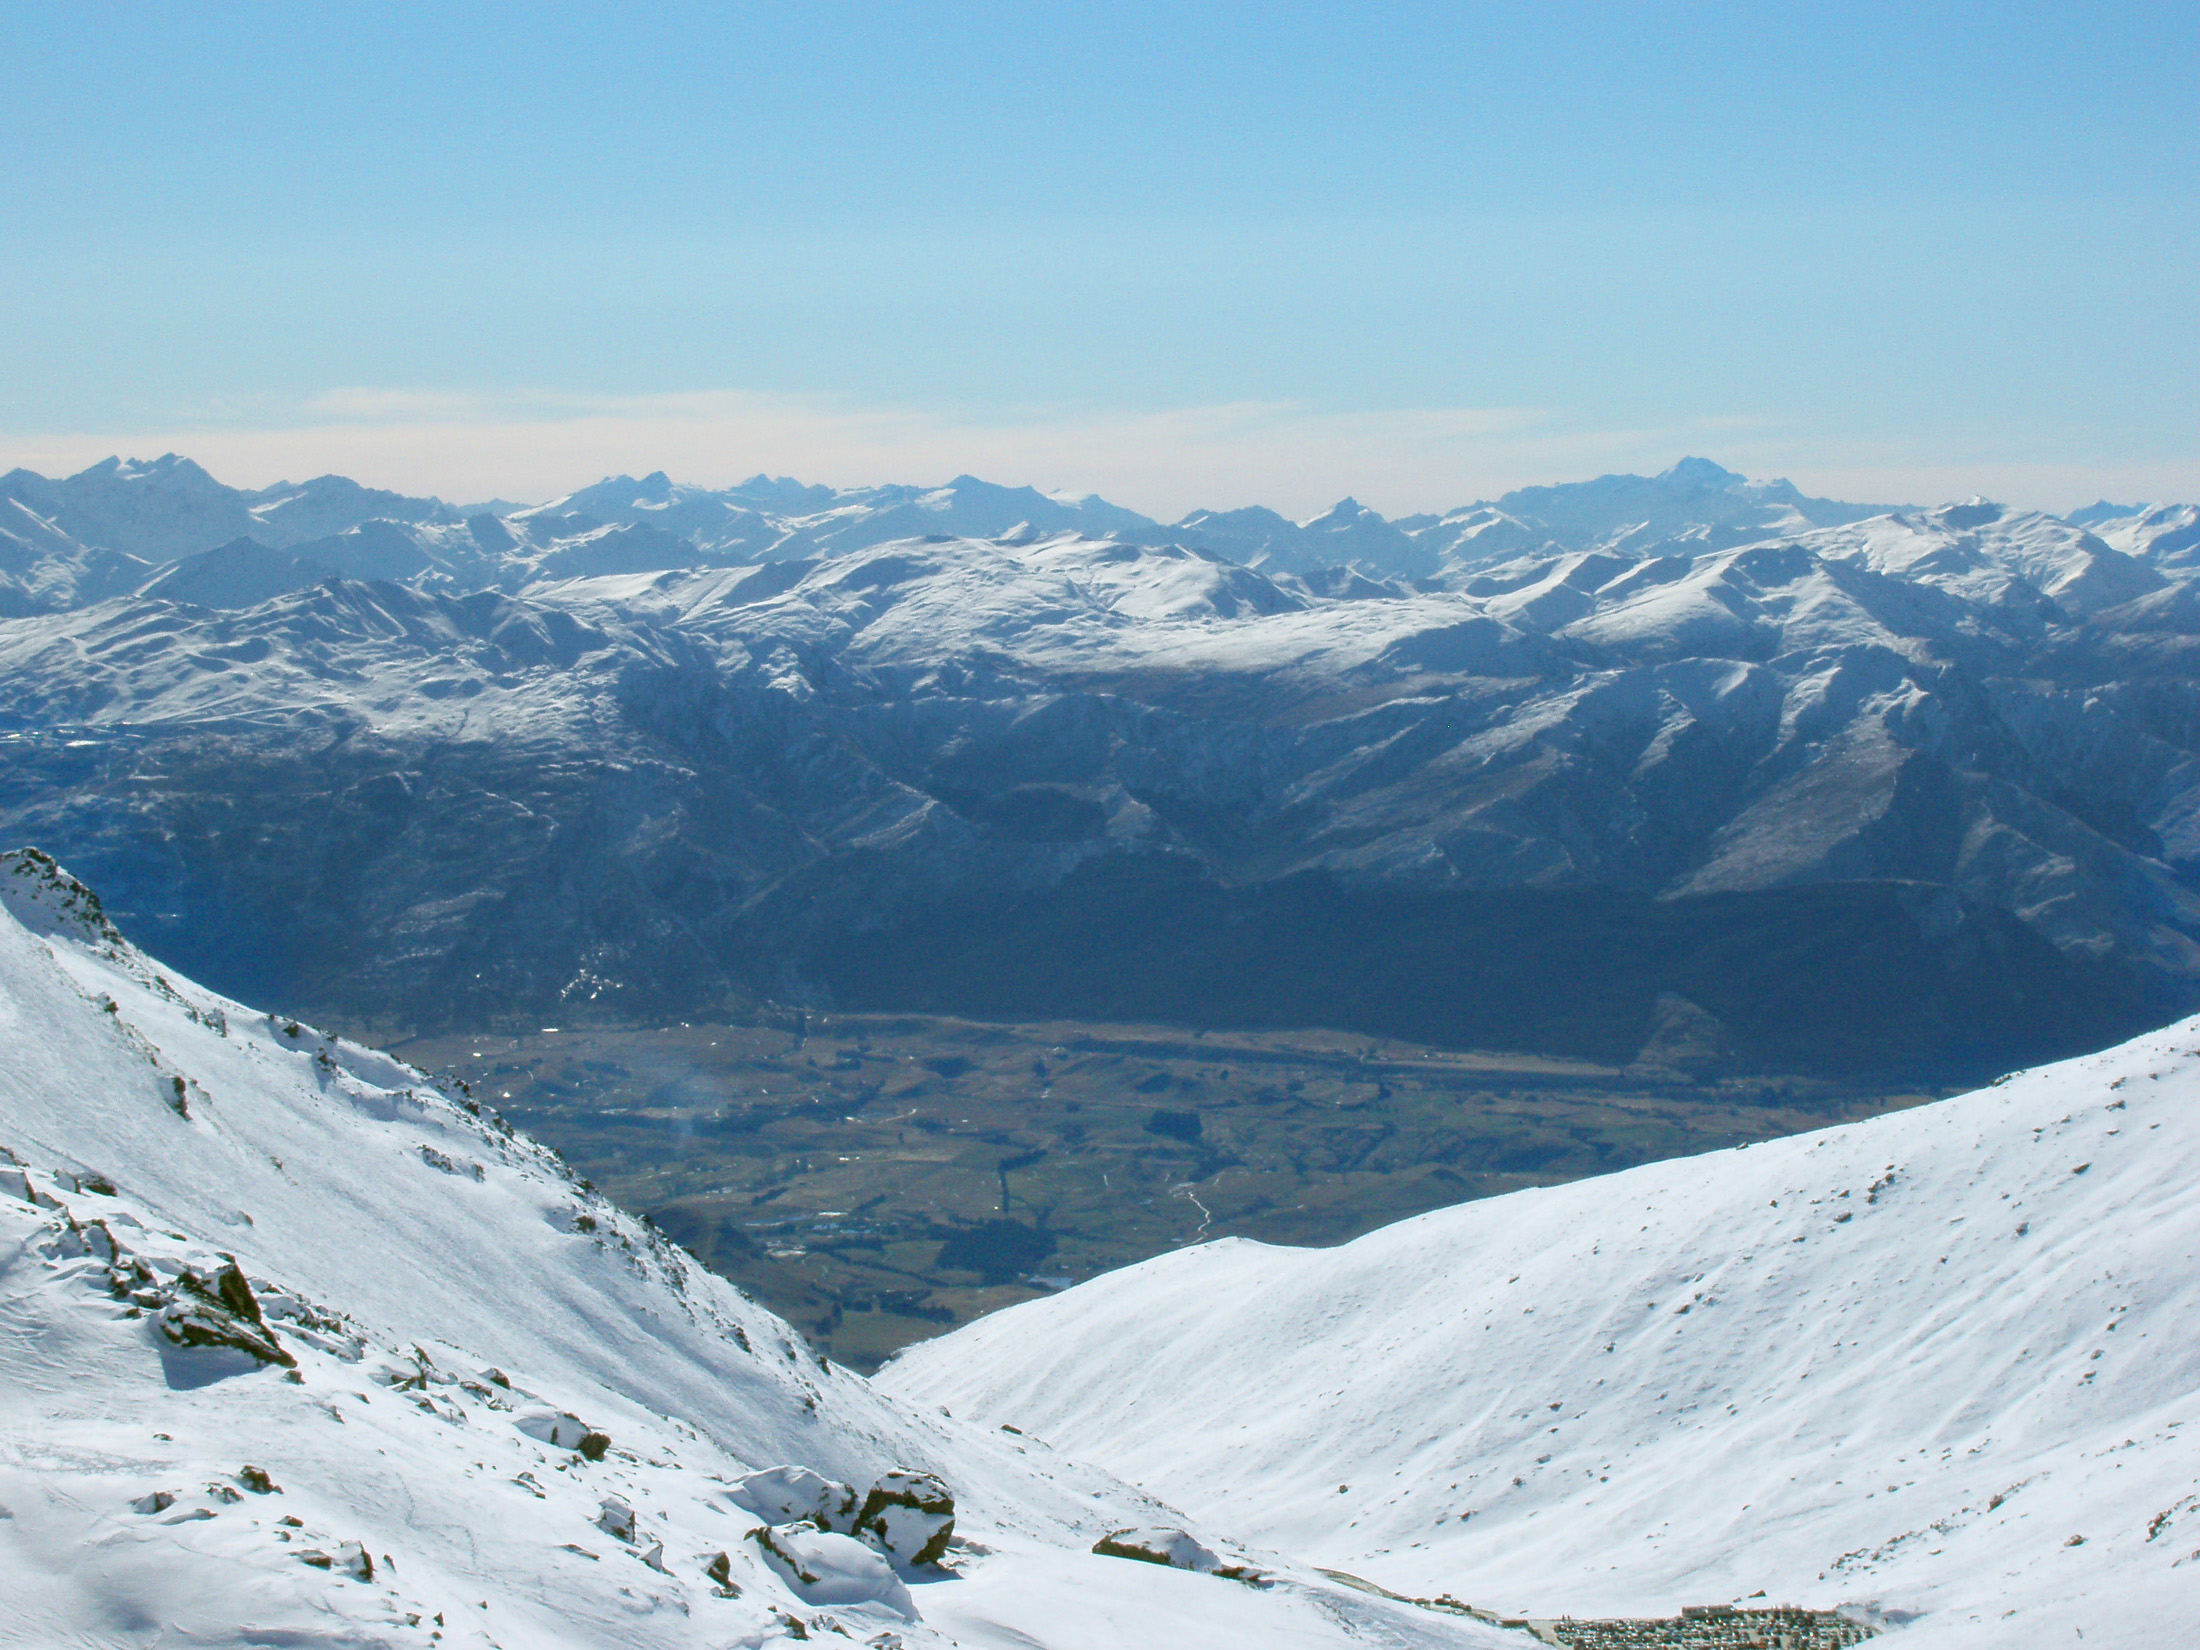 mountain winter sports at the remarkables ski area, queenstown newzealand